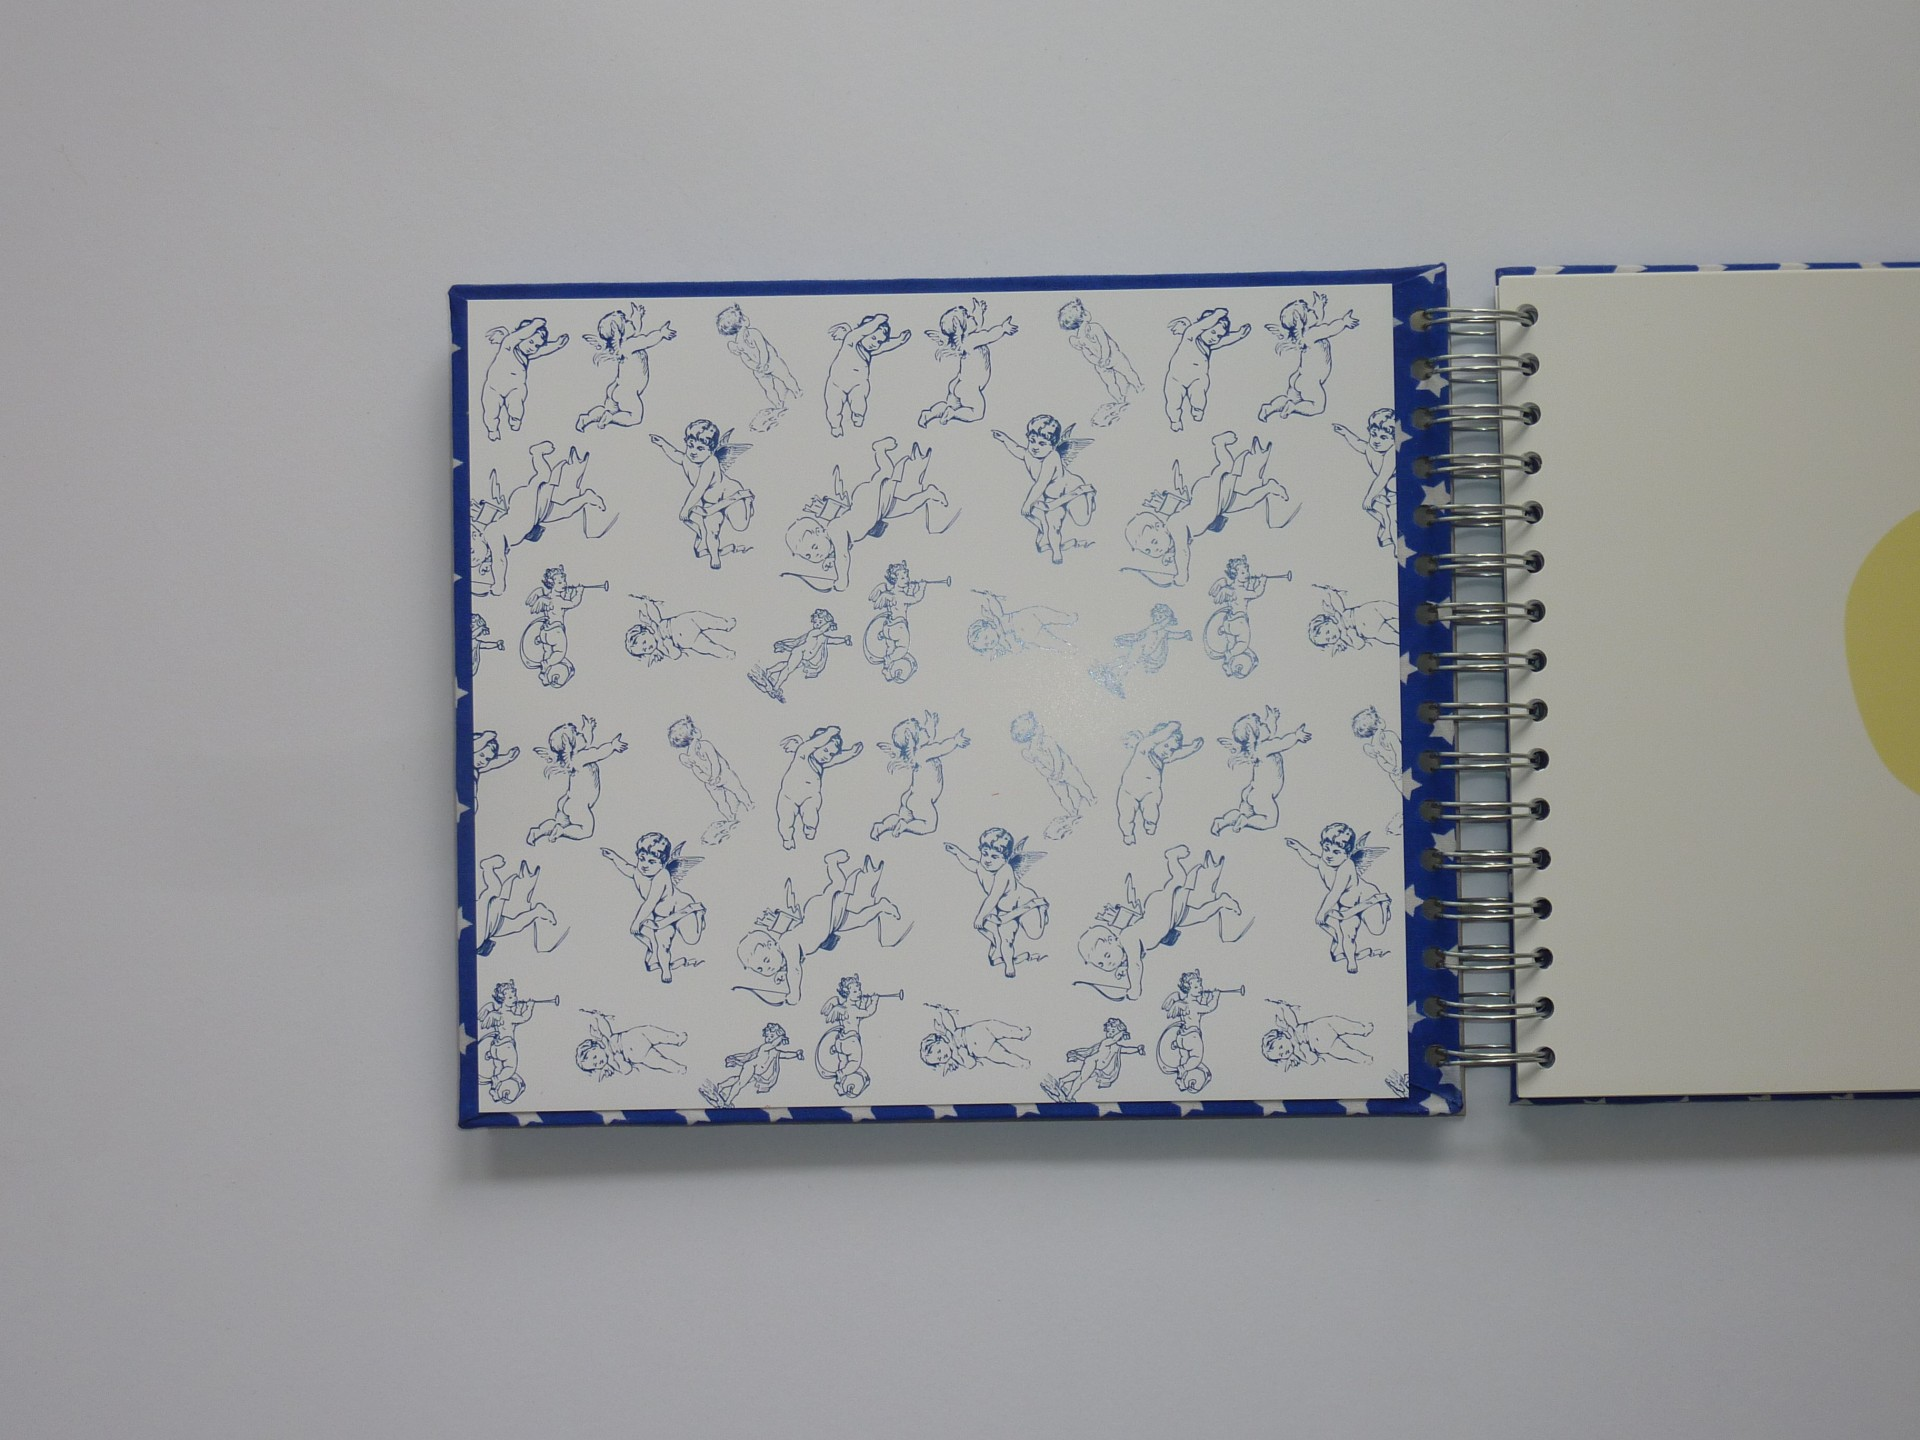 Royal blue with white stars (The baby's notebook)